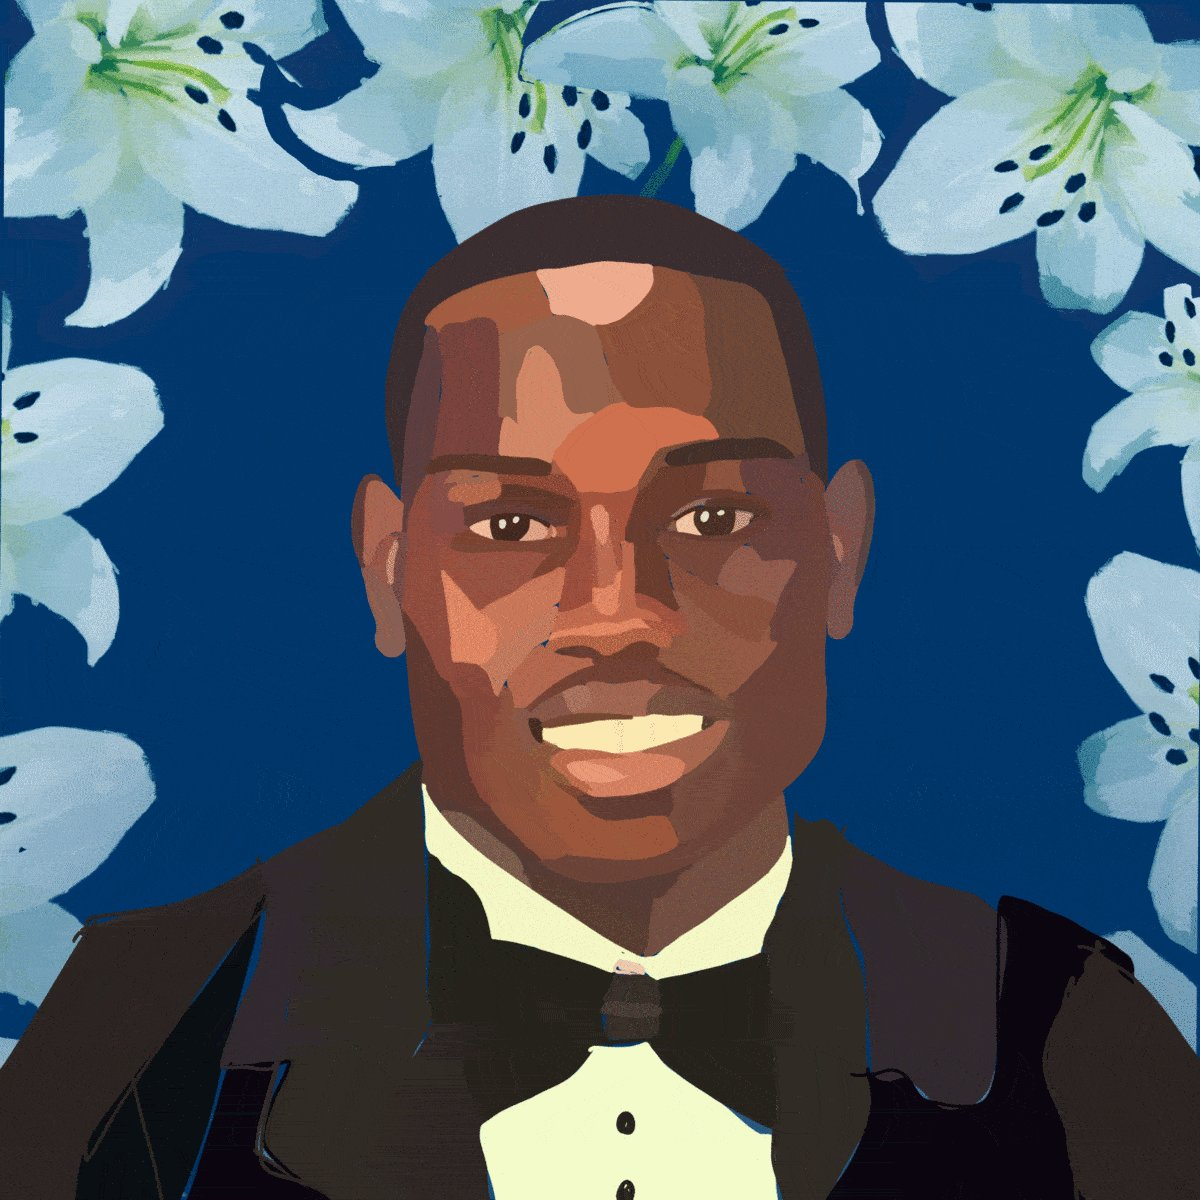 Ahmaud Arbery should be alive with us today. He deserved for his life to be valued, and for justice to be served when white supremacy and a gun stole his life. But justice has not occurred, and we must continue on, honoring his life in our work. https://t.co/wjQwWsK1b1